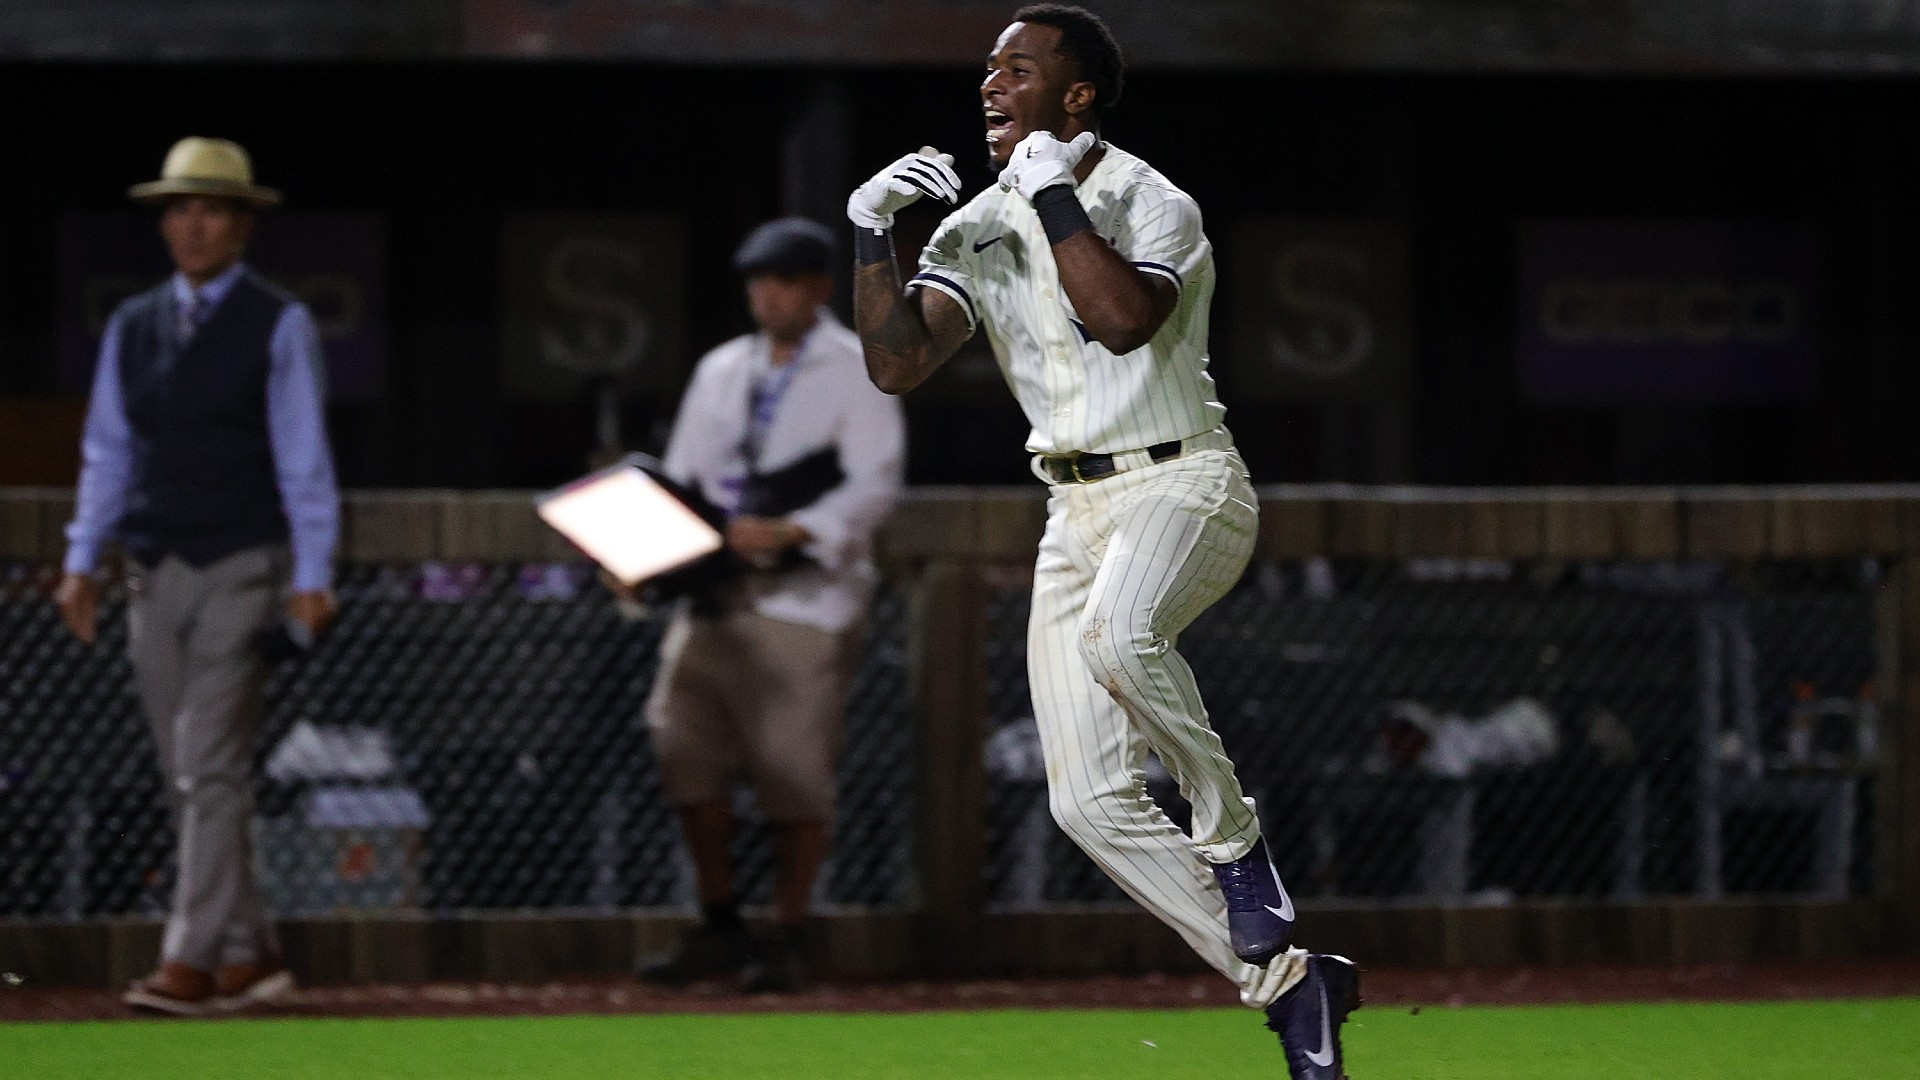 Tim Anderson describes walk-off homer in Field of Dreams Game: 'I knew what I was looking for'